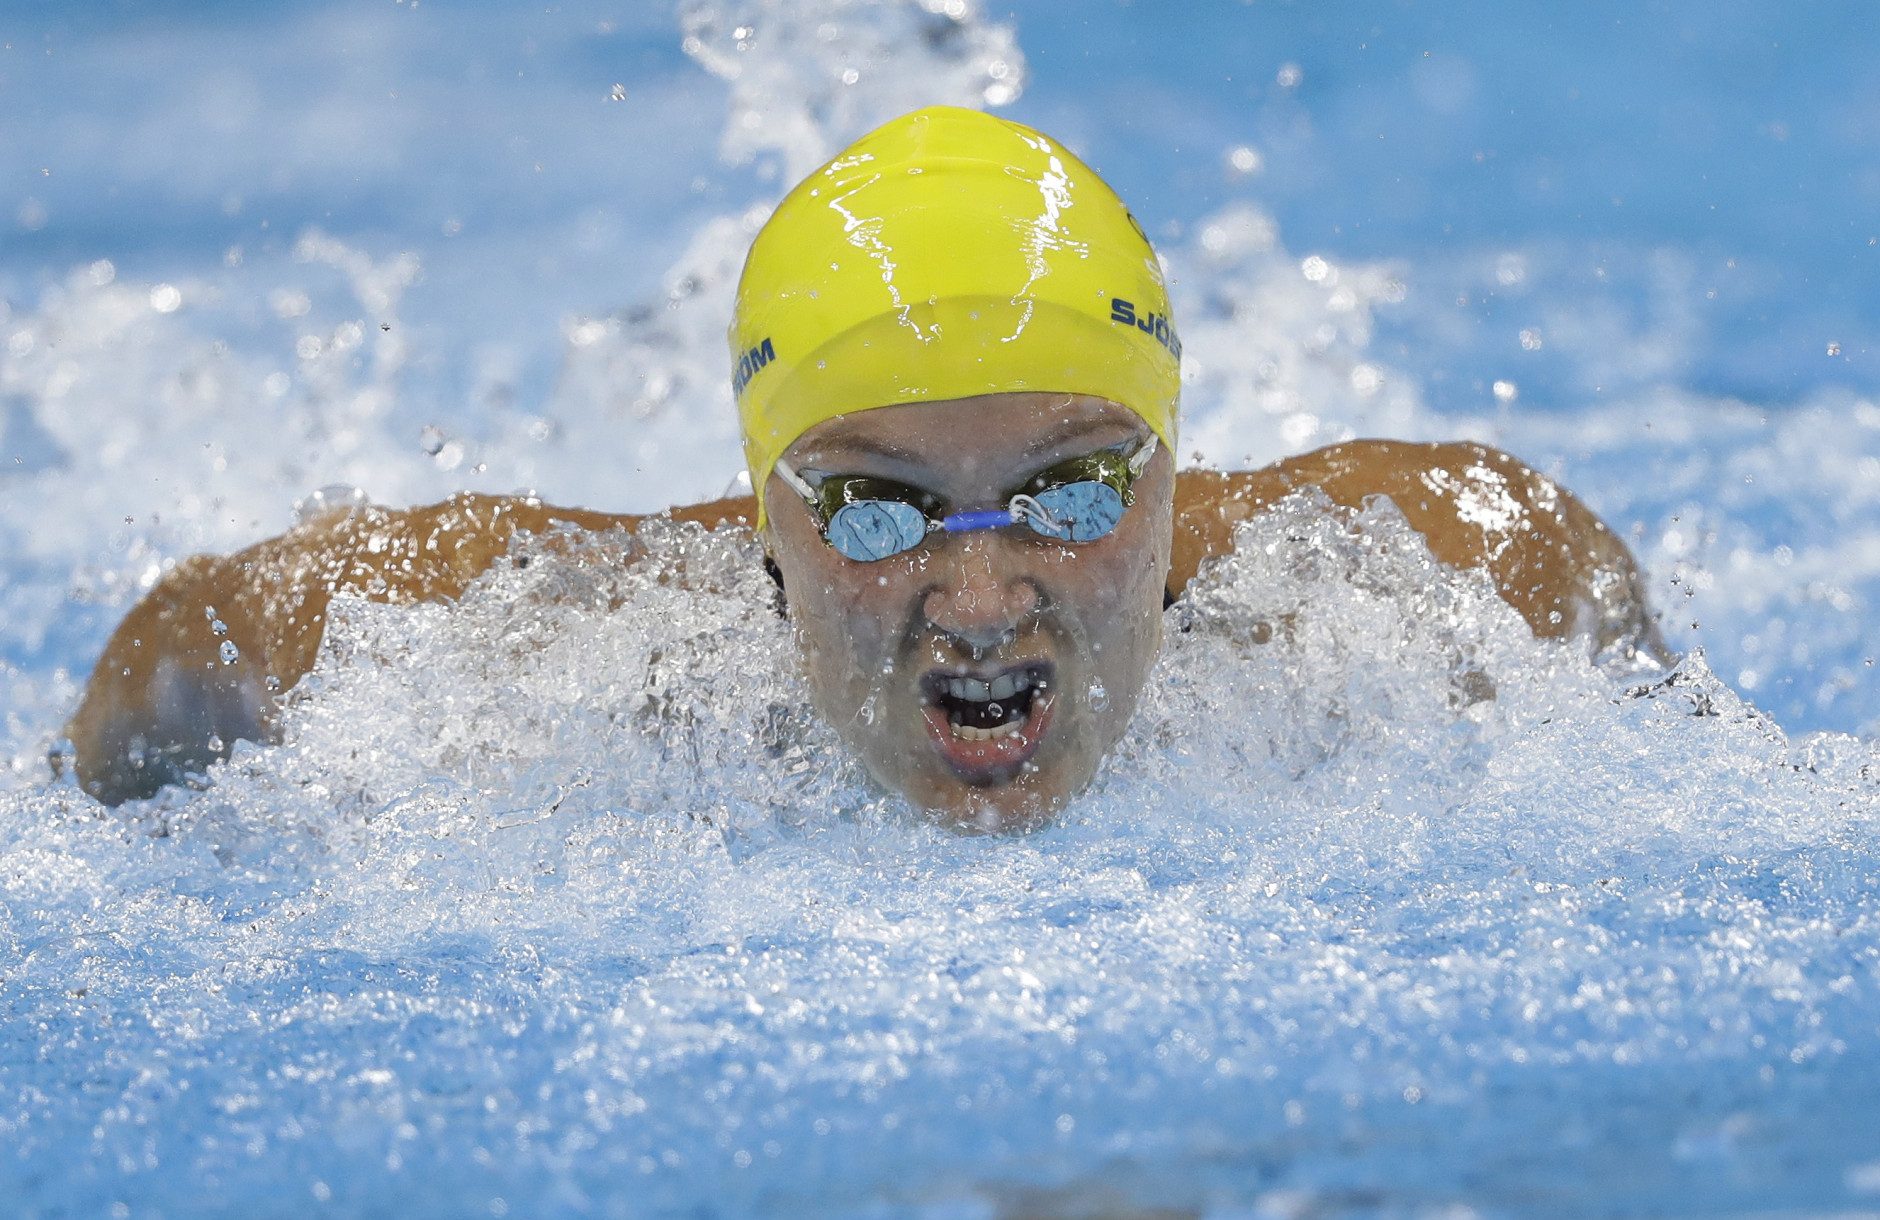 Sweden's Sarah Sjostrom competes in a women's 100m butterfly heat during the swimming competitions at the 2016 Summer Olympics, Saturday, Aug. 6, 2016, in Rio de Janeiro, Brazil. (AP Photo/Michael Sohn)